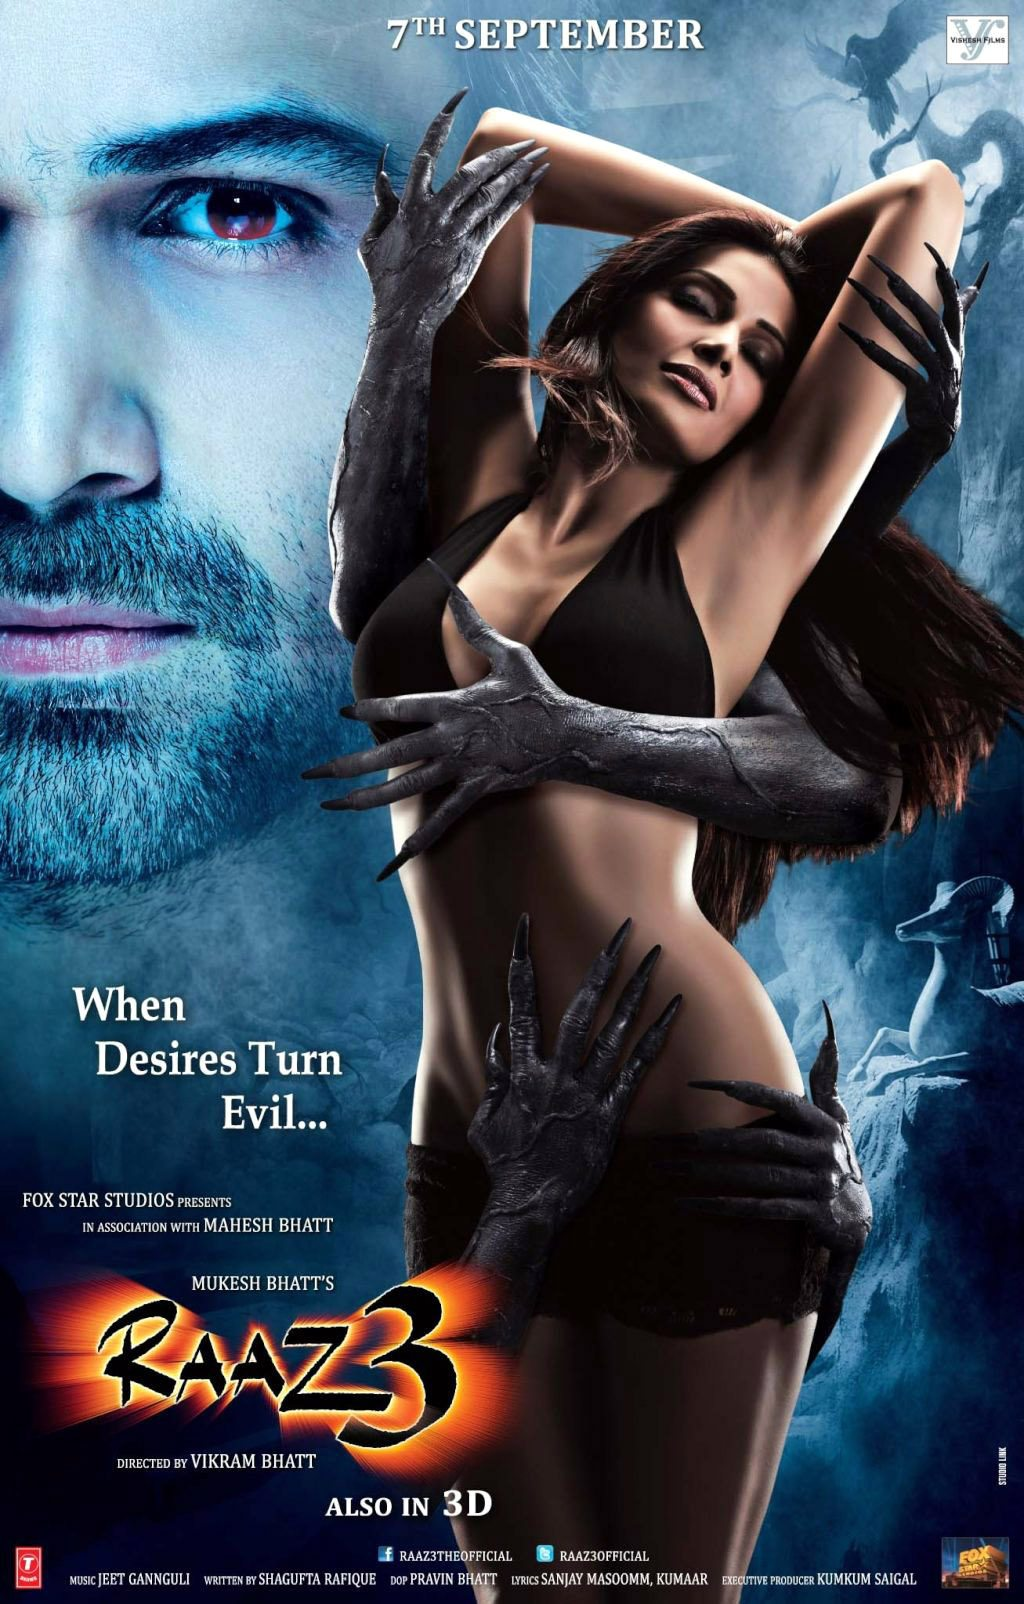 Raaz 3 – The Third Dimension (2012)